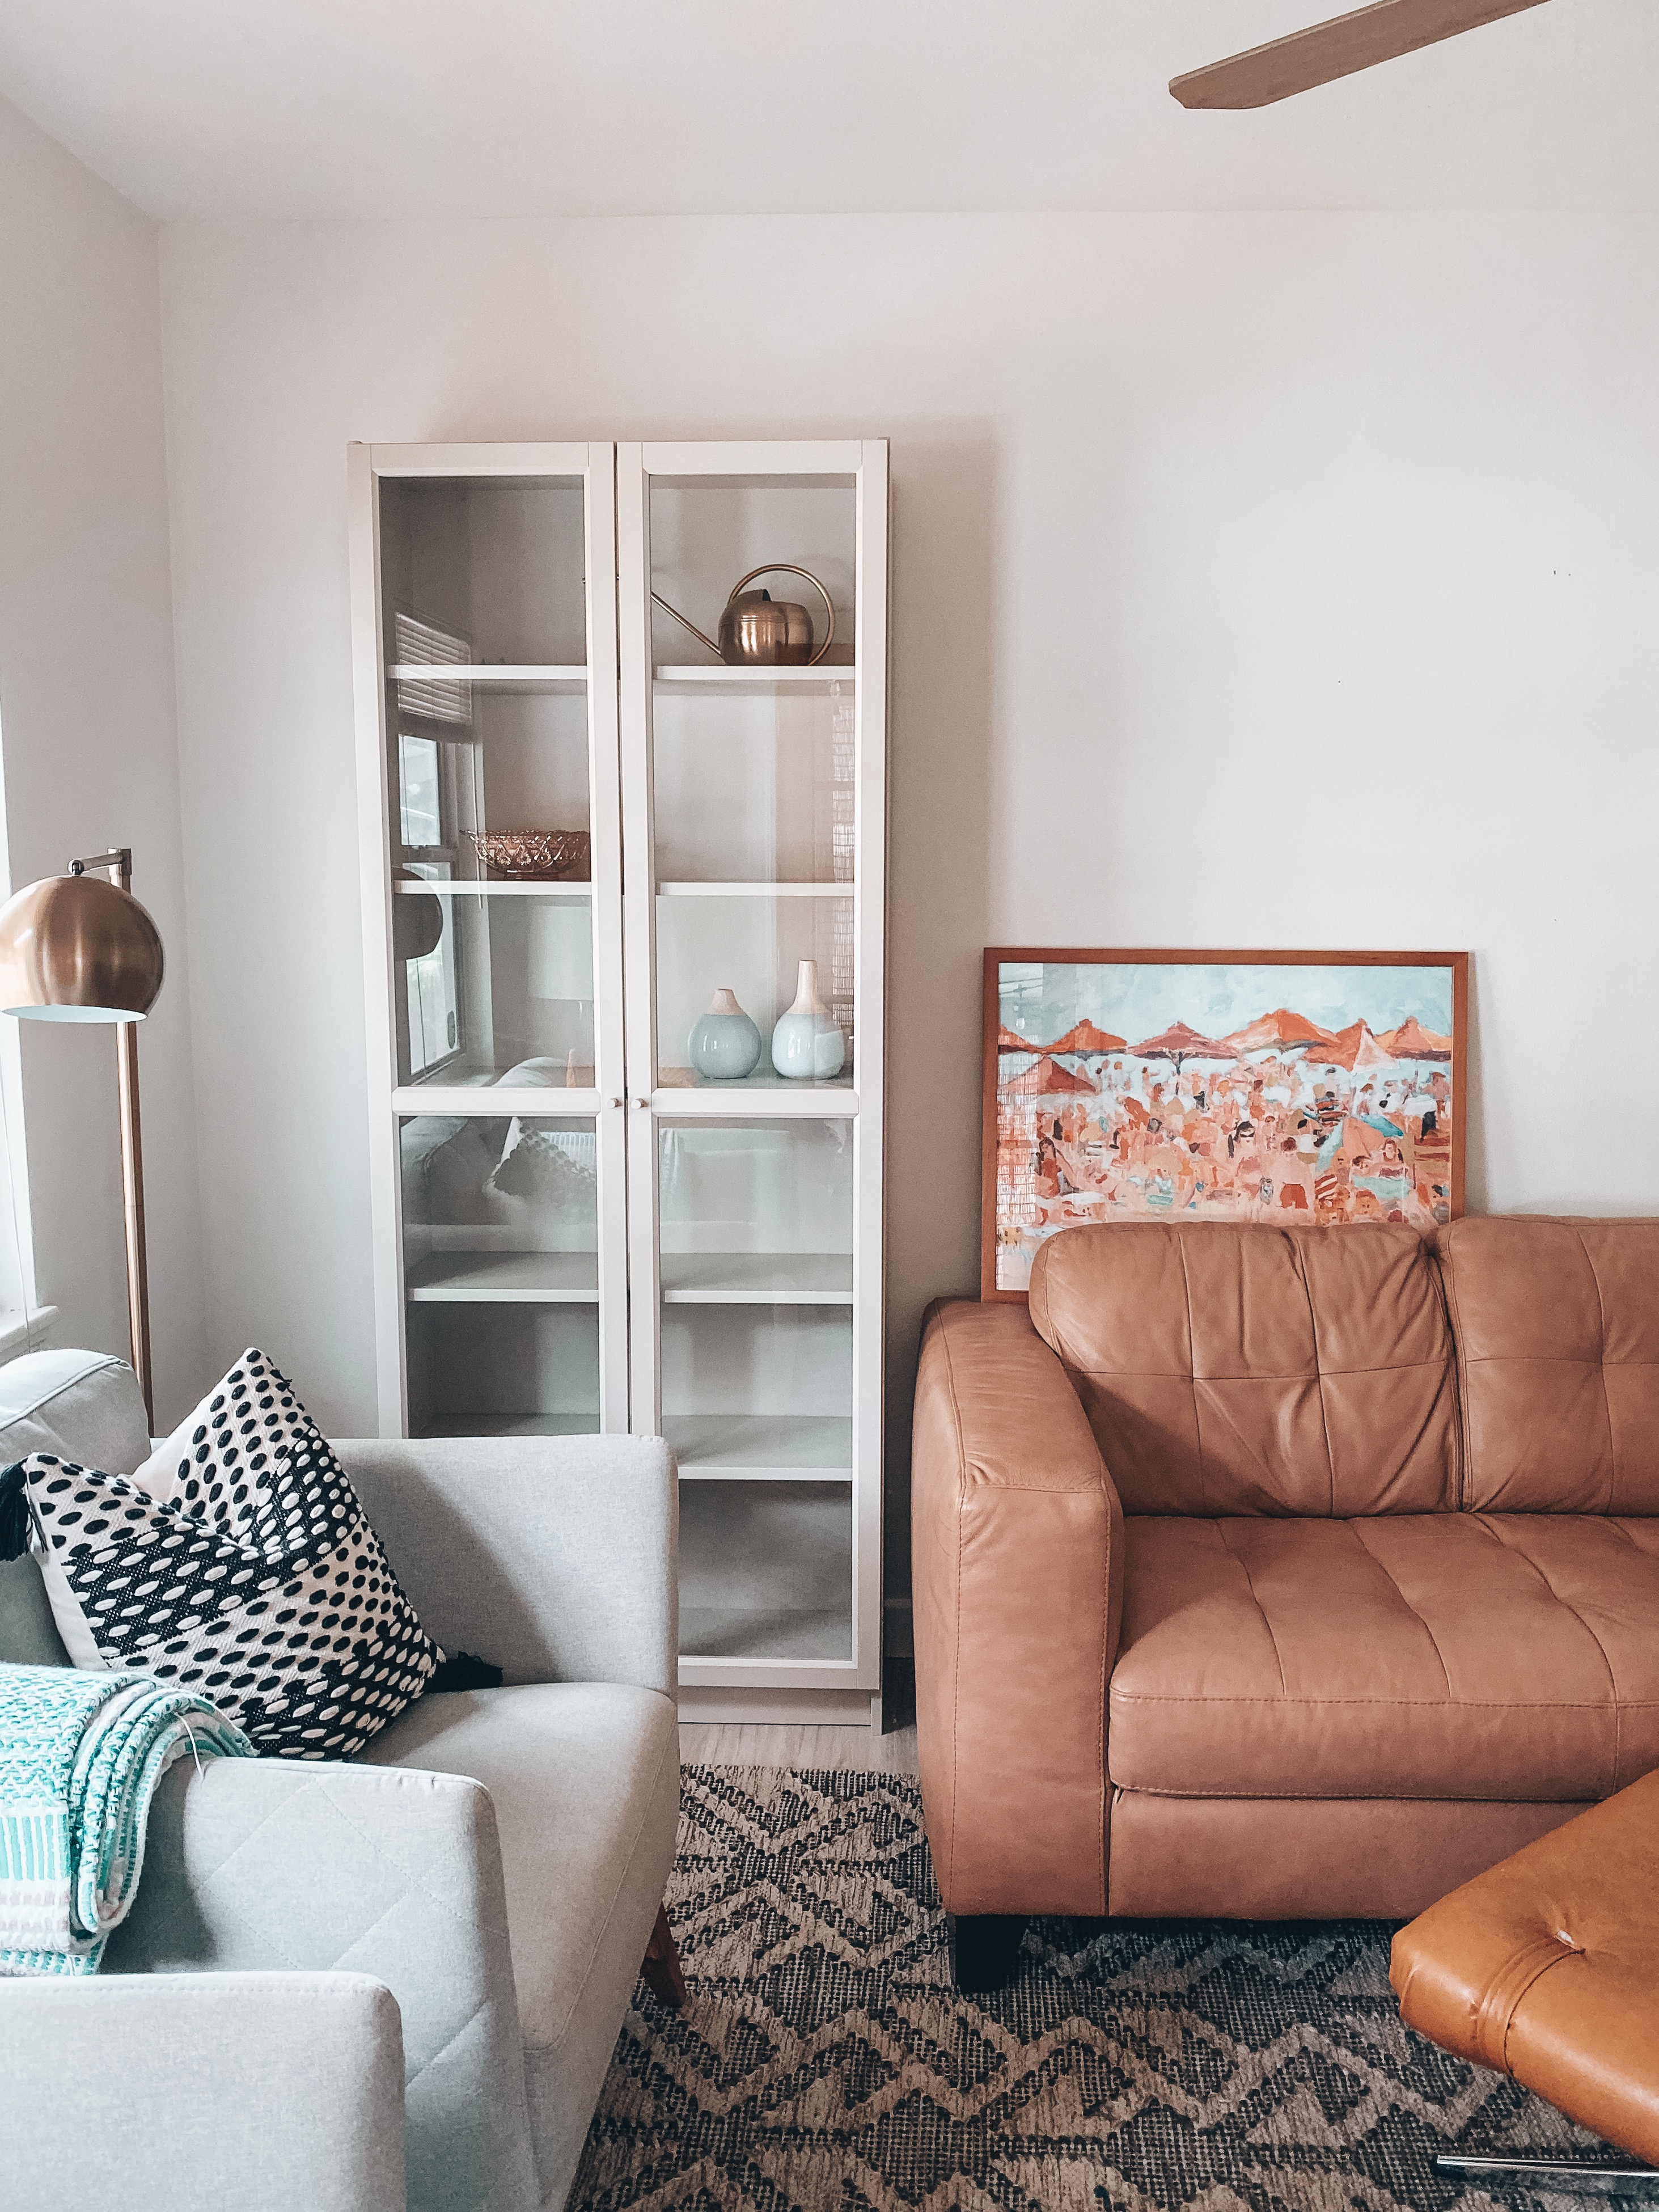 Ikea Billy Bookcase Painting The Living Room And Tips On Executing Projects Over The Weekend Blushing Bungalow